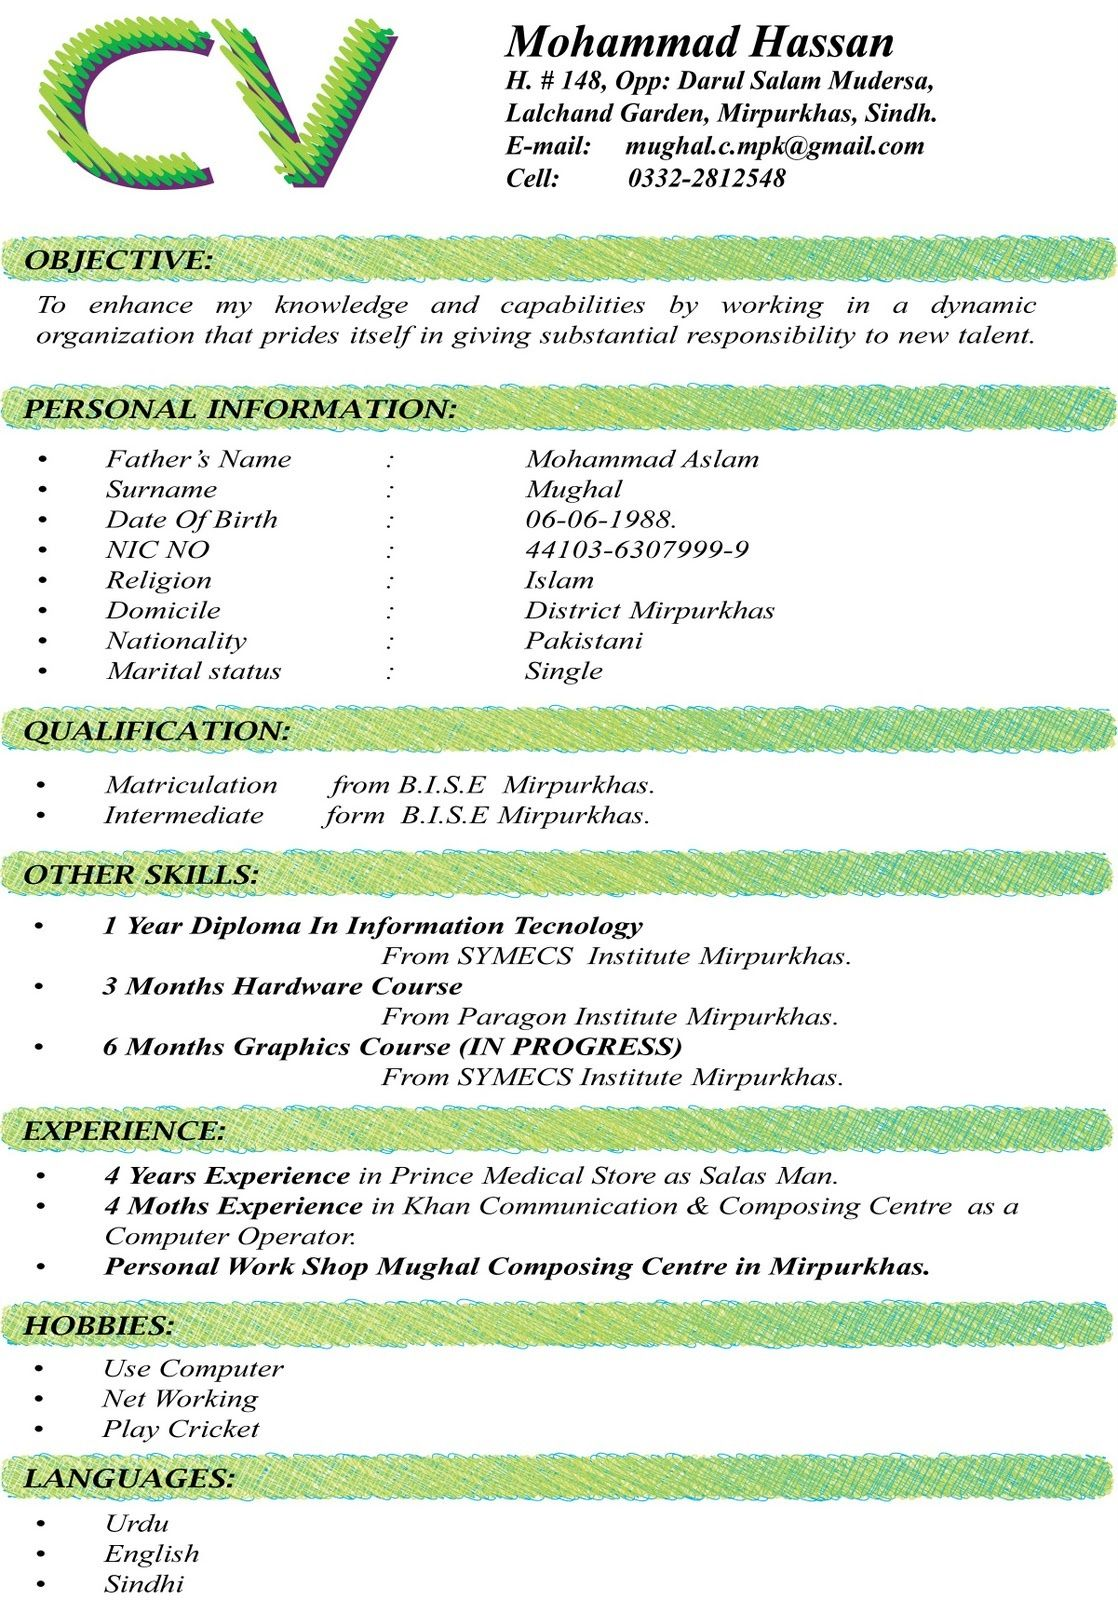 Best Cv Formats Pakteacher 6 Pak Teacher Jobs Updates